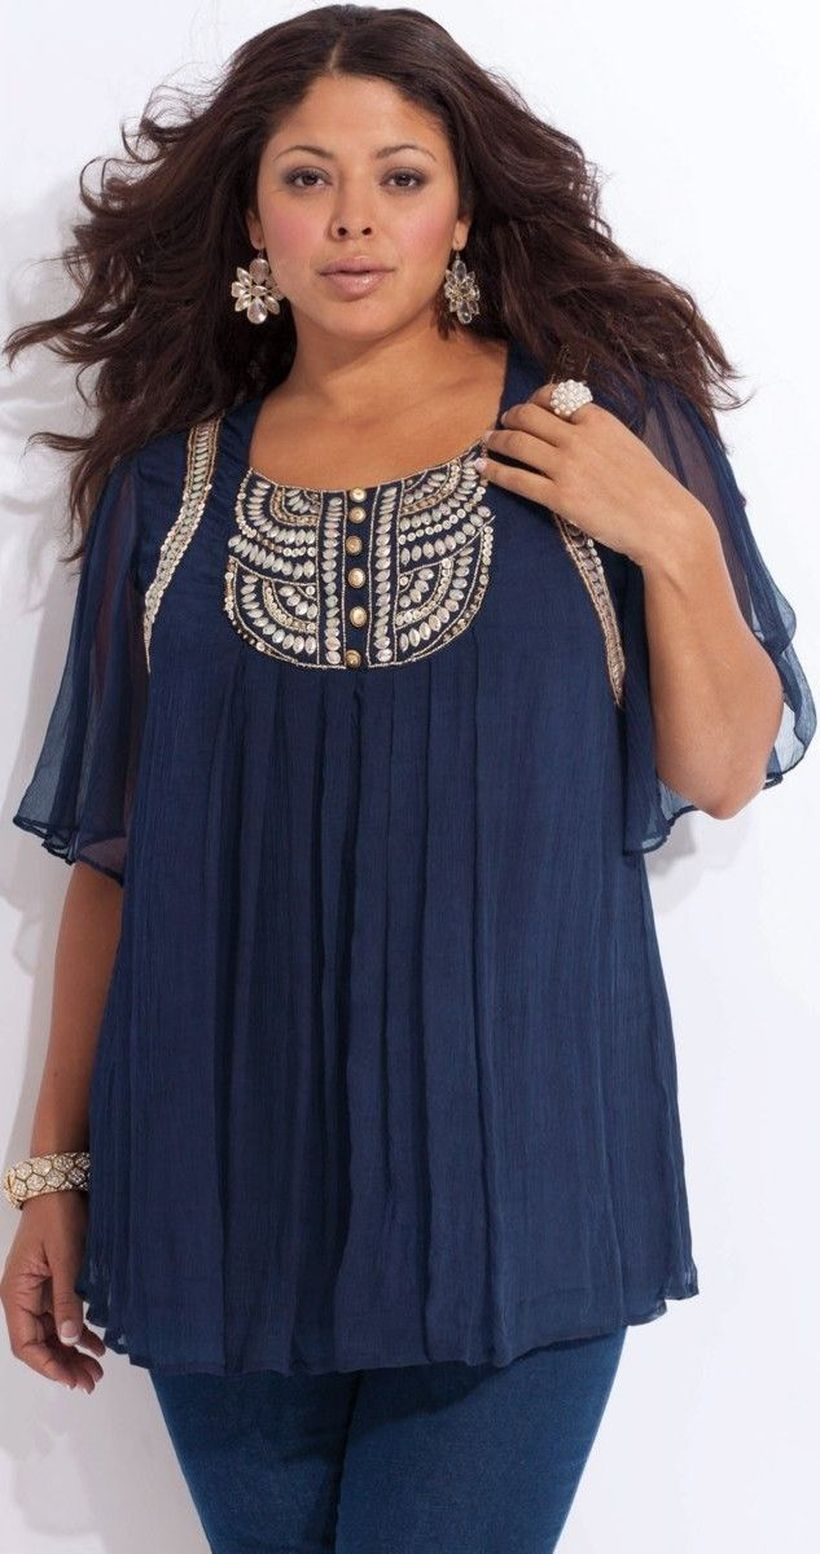 Plus size boho outfit style 38